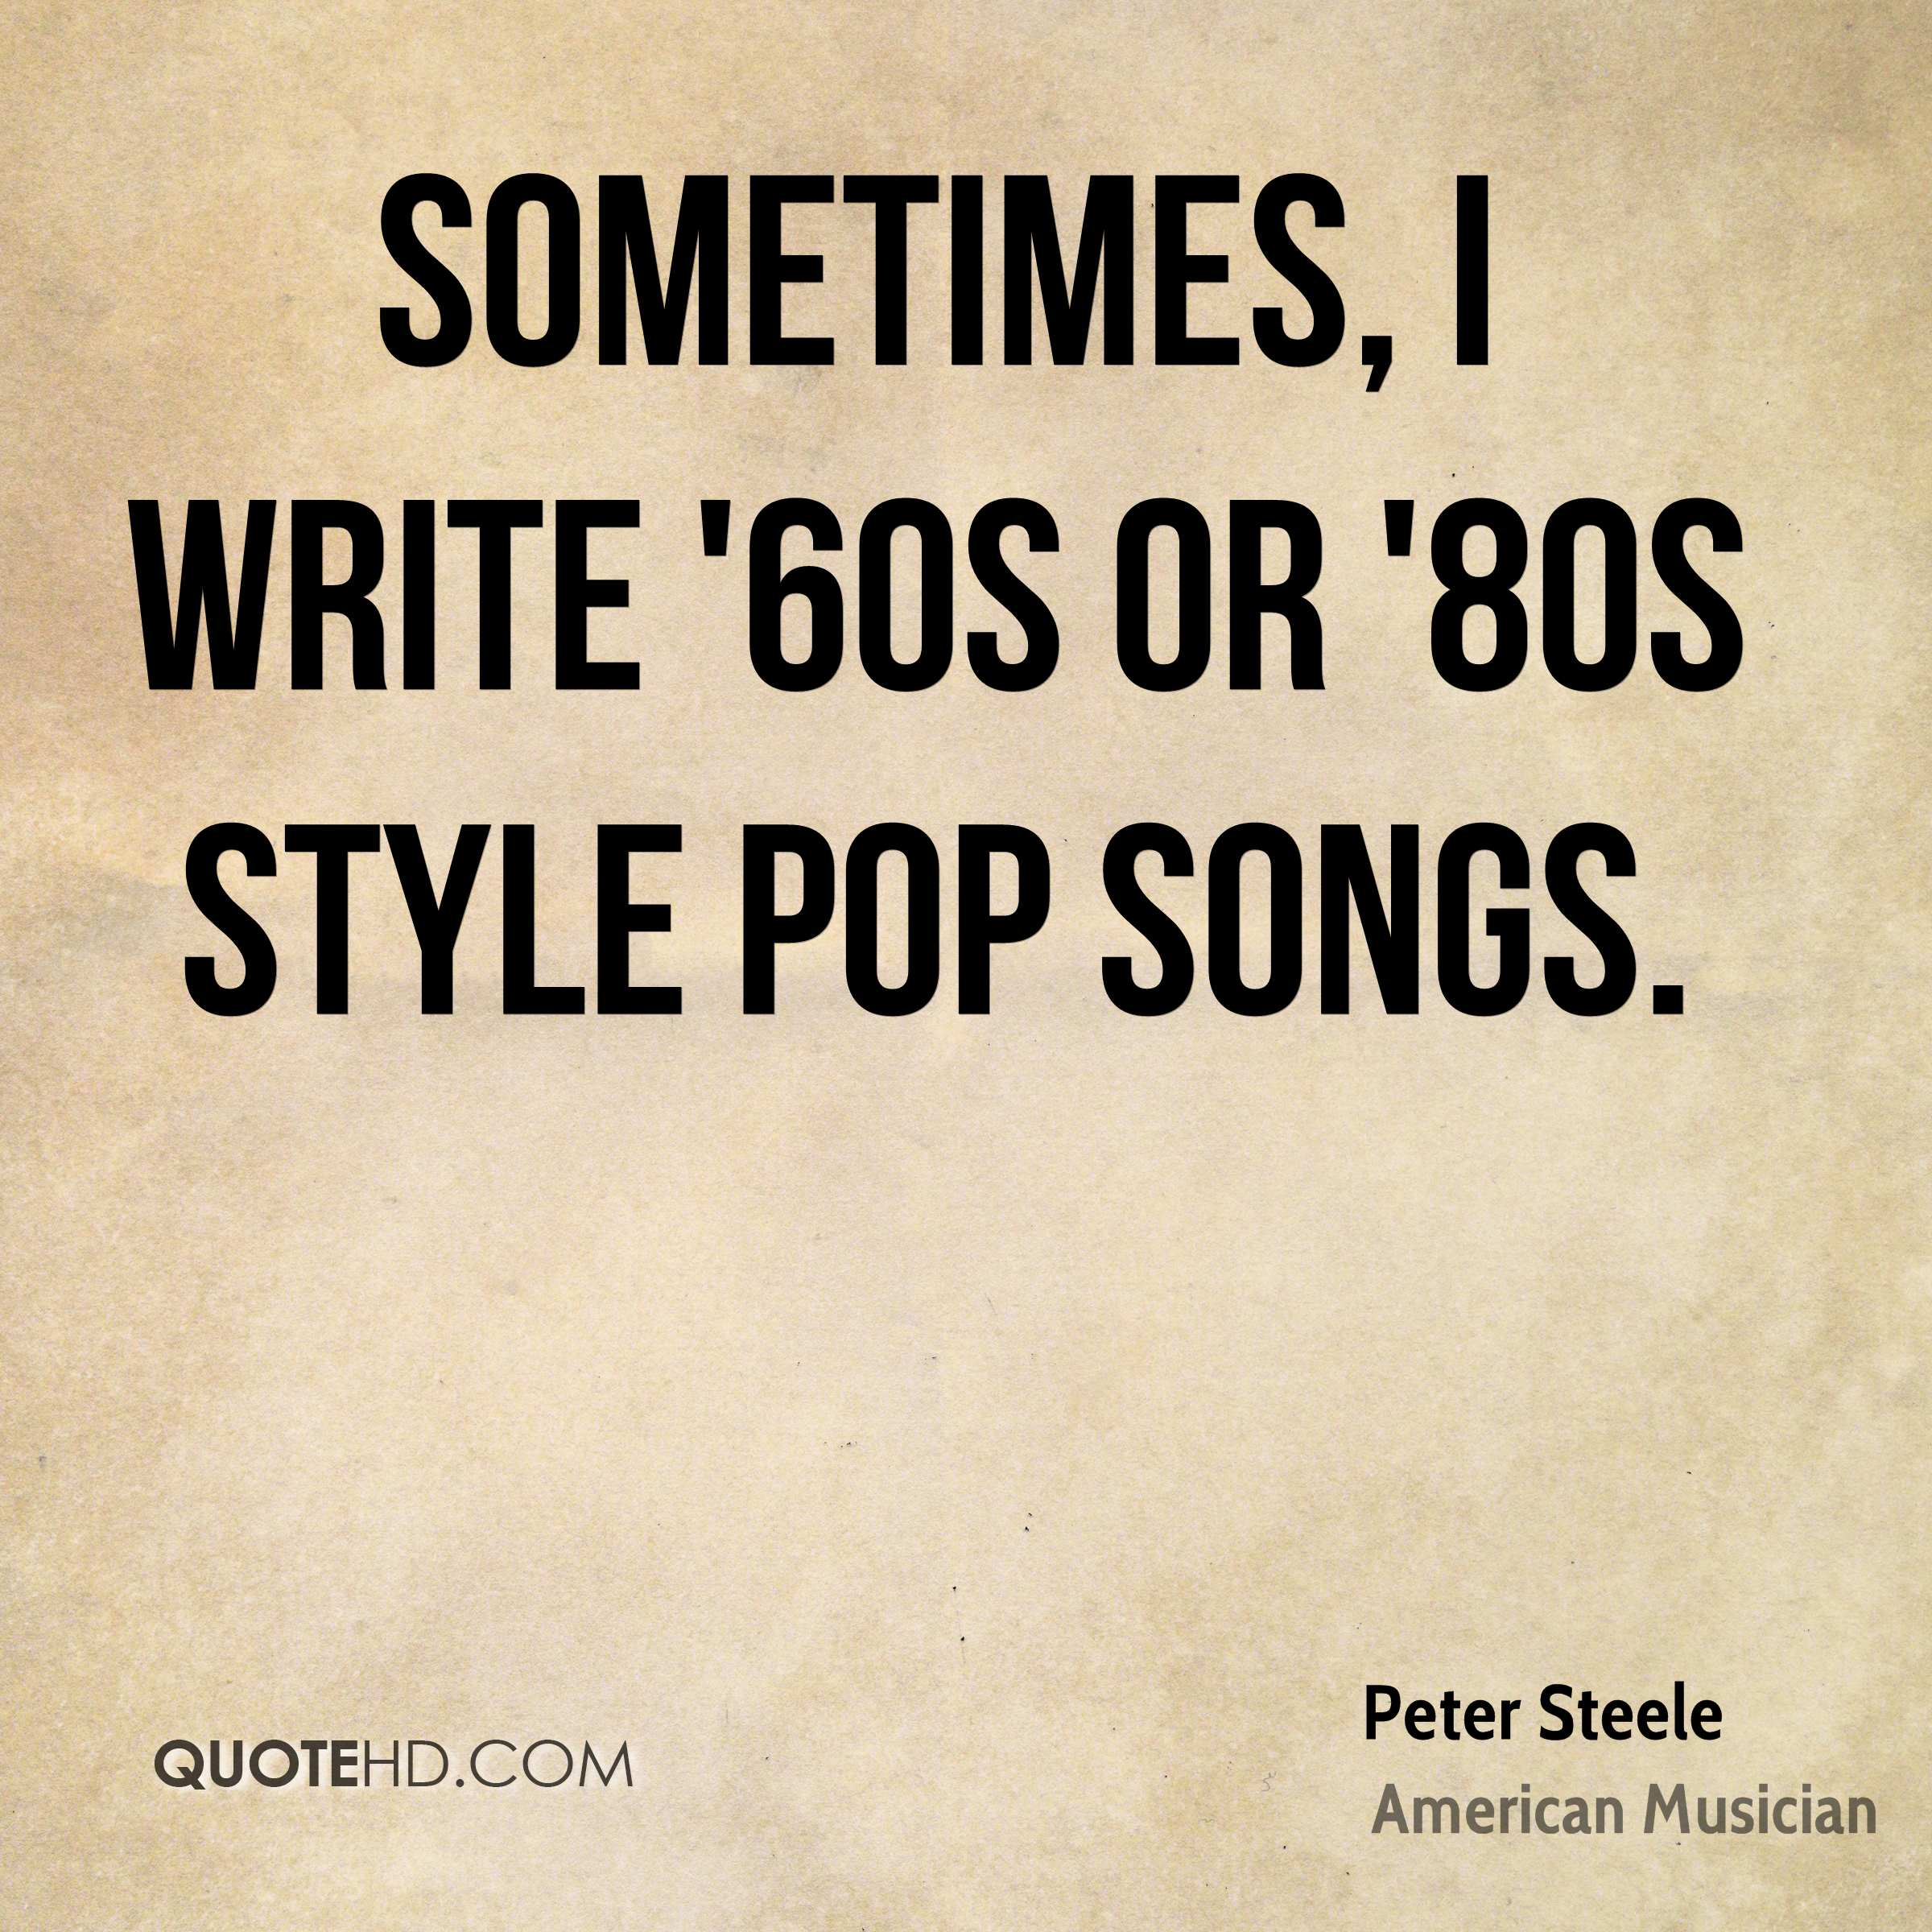 Sometimes I Write 60s Or 80s Style Pop Songs